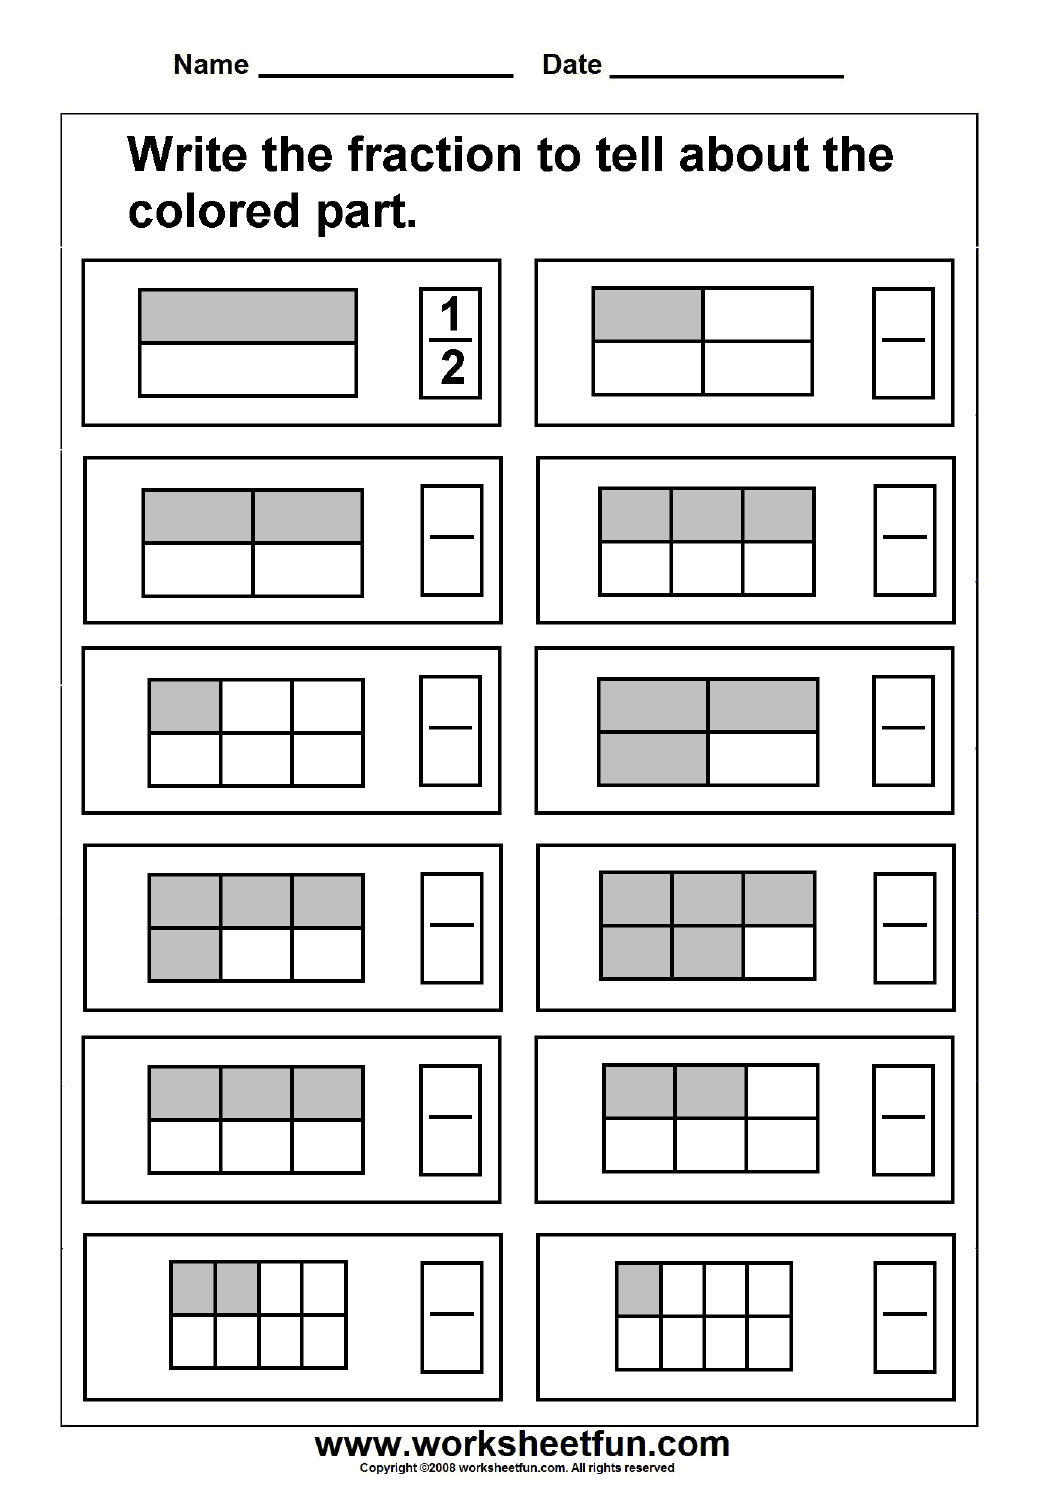 Fraction FREE Printable Worksheets Worksheetfun – Fractions Worksheets Printable